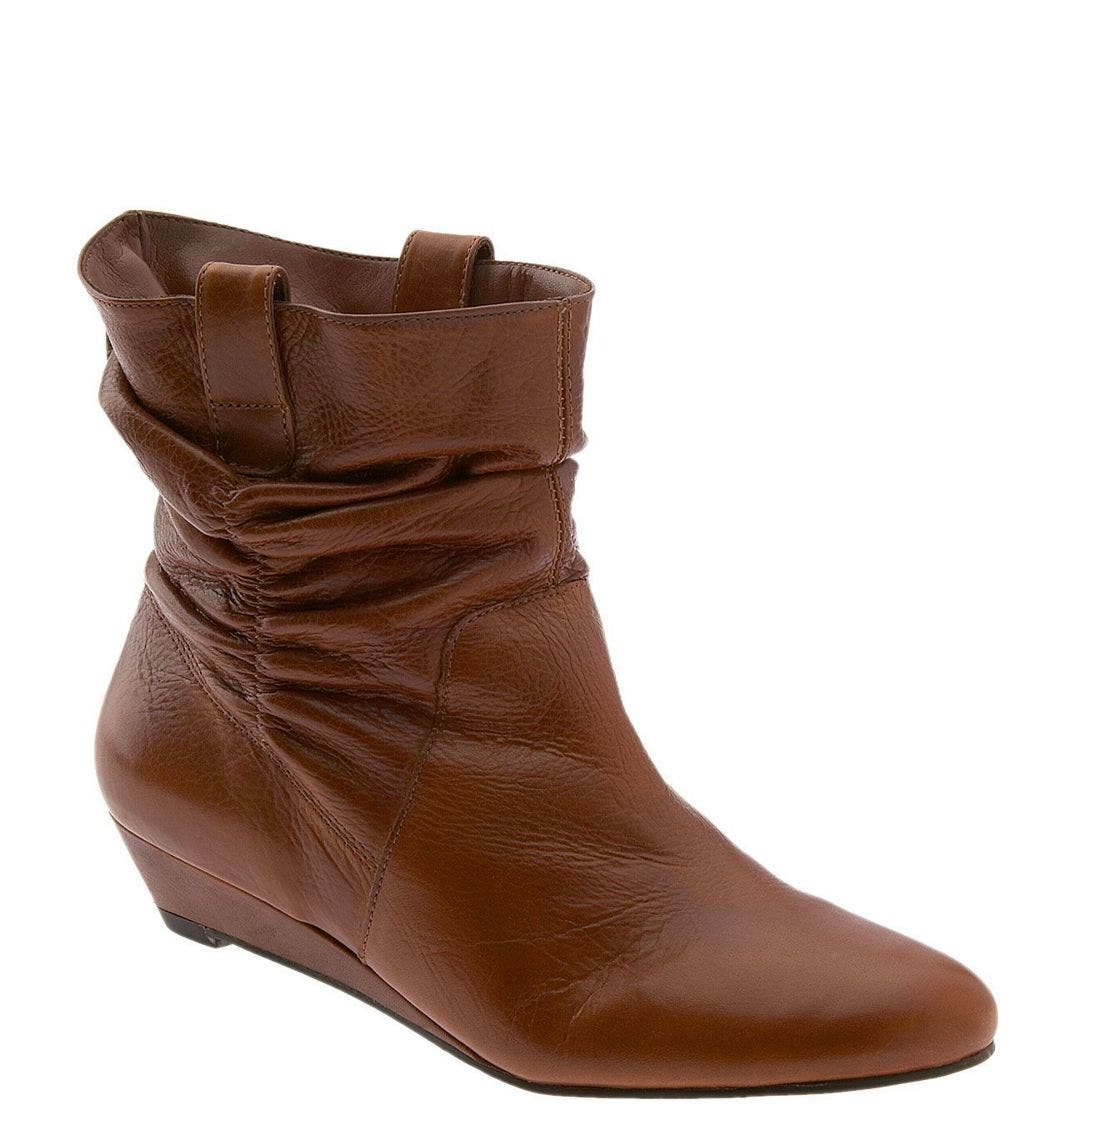 Main Image - Steven by Steve Madden 'Insist' Ankle Boot